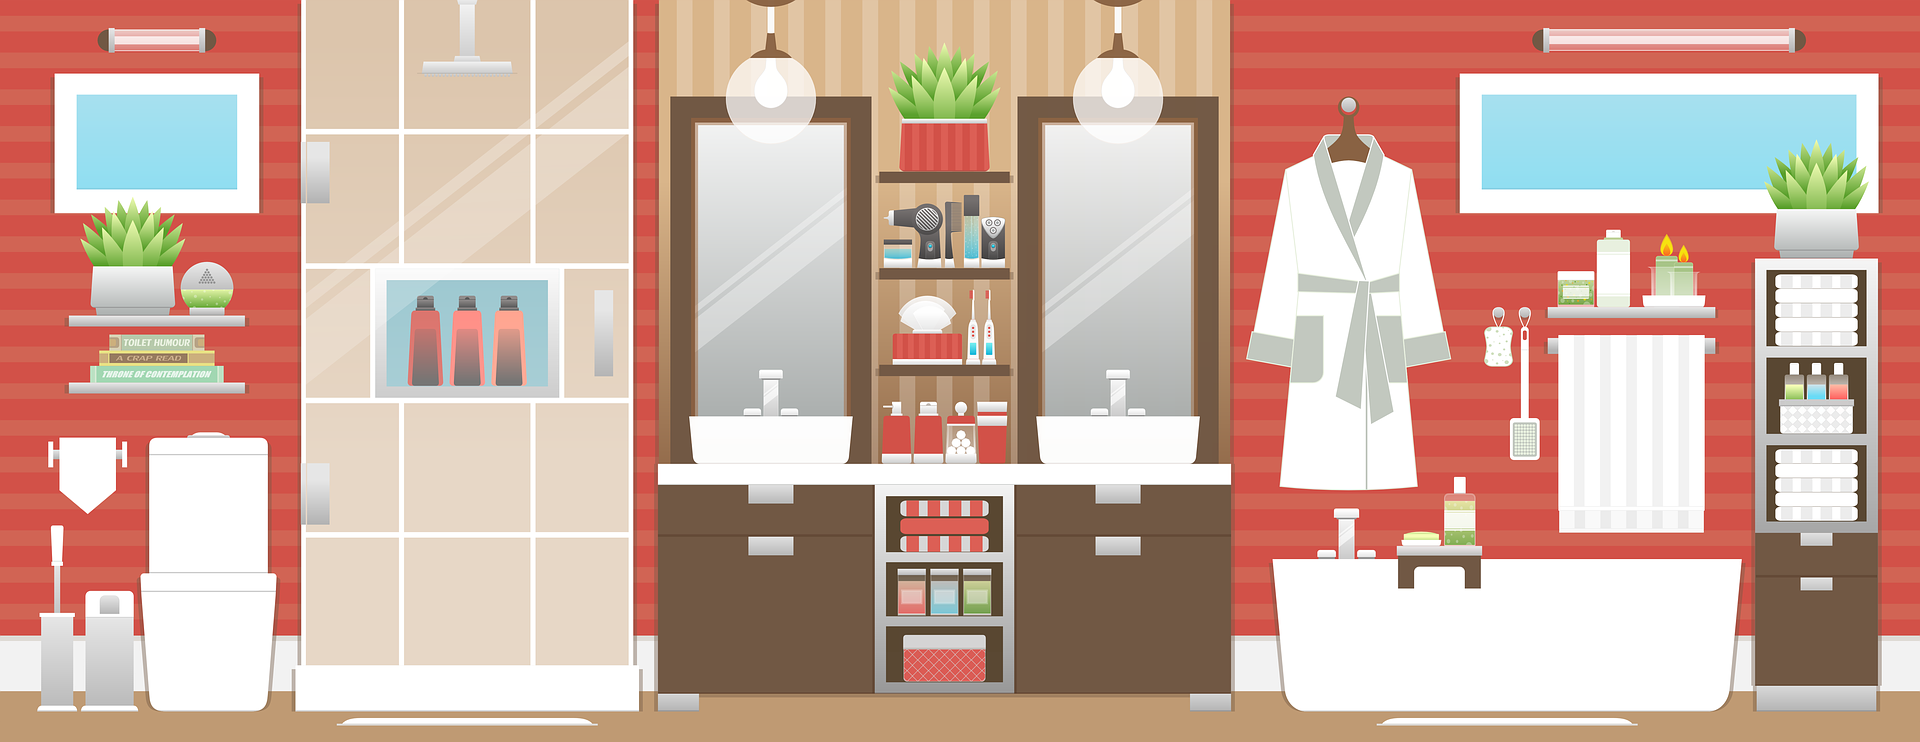 Bathroom cleaning tips and infographic